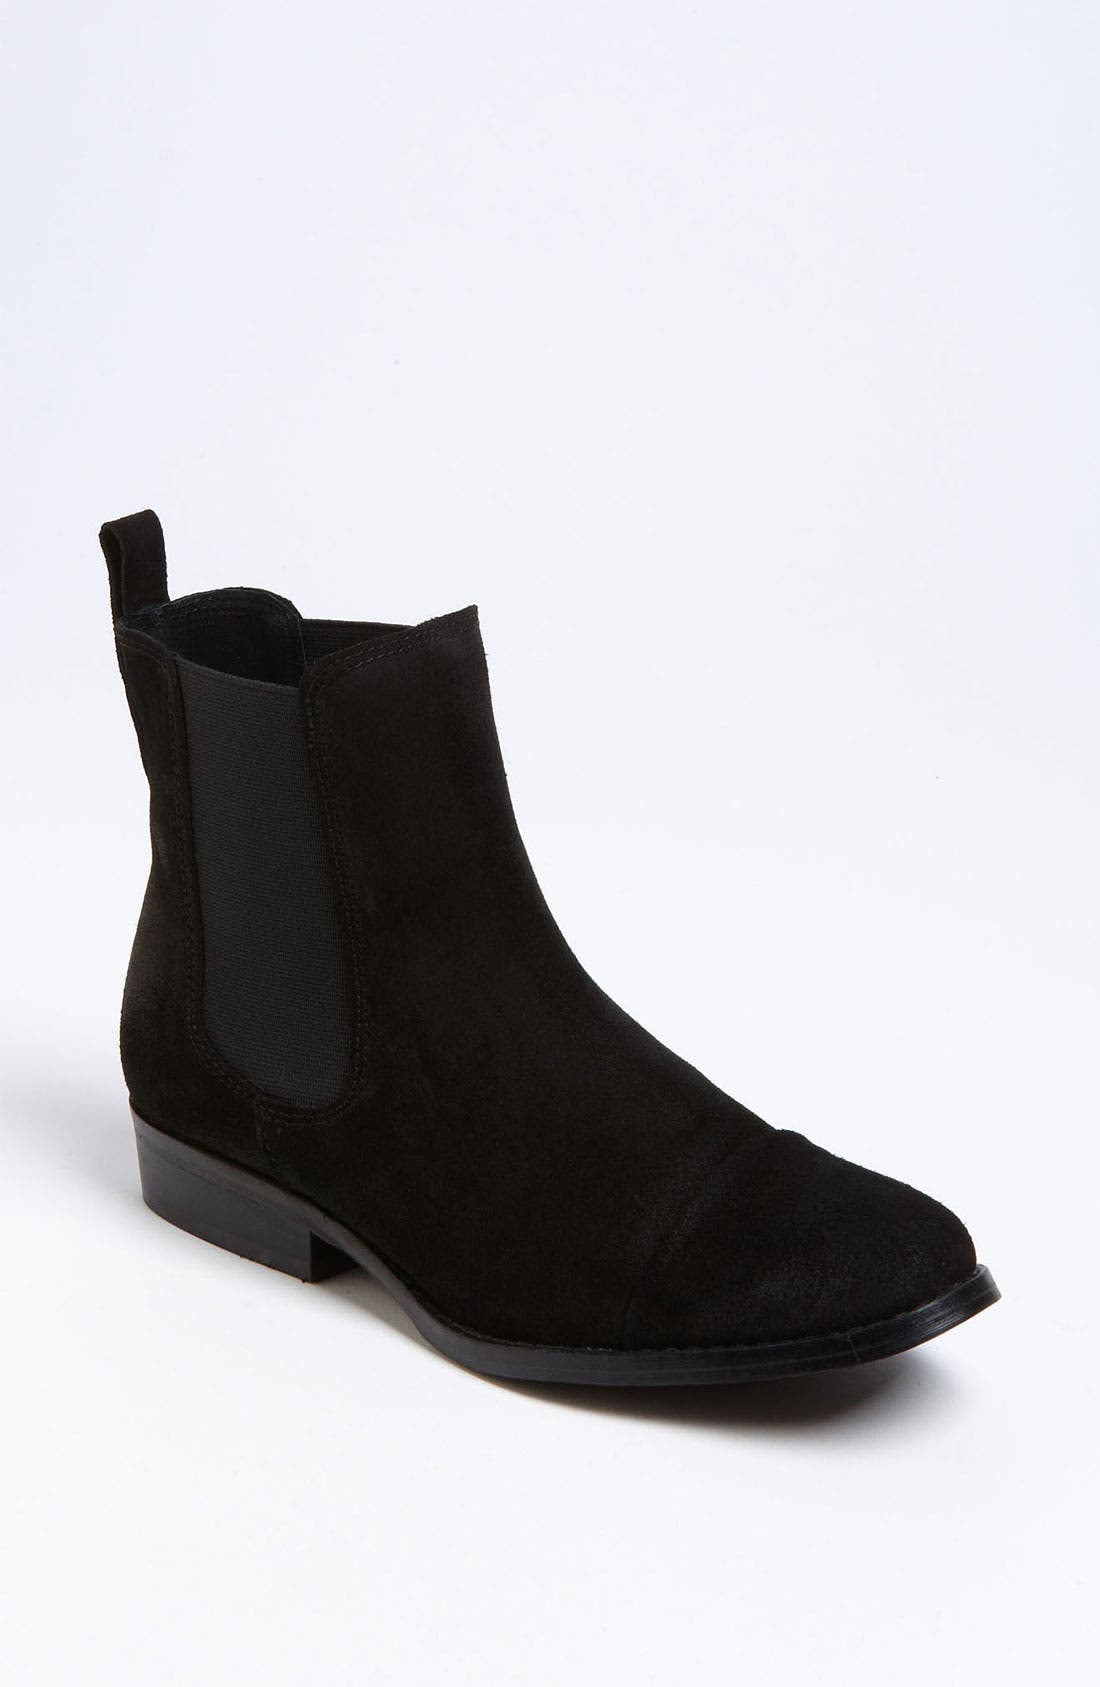 Main Image - Jeffrey Campbell 'Areas Low' Boot